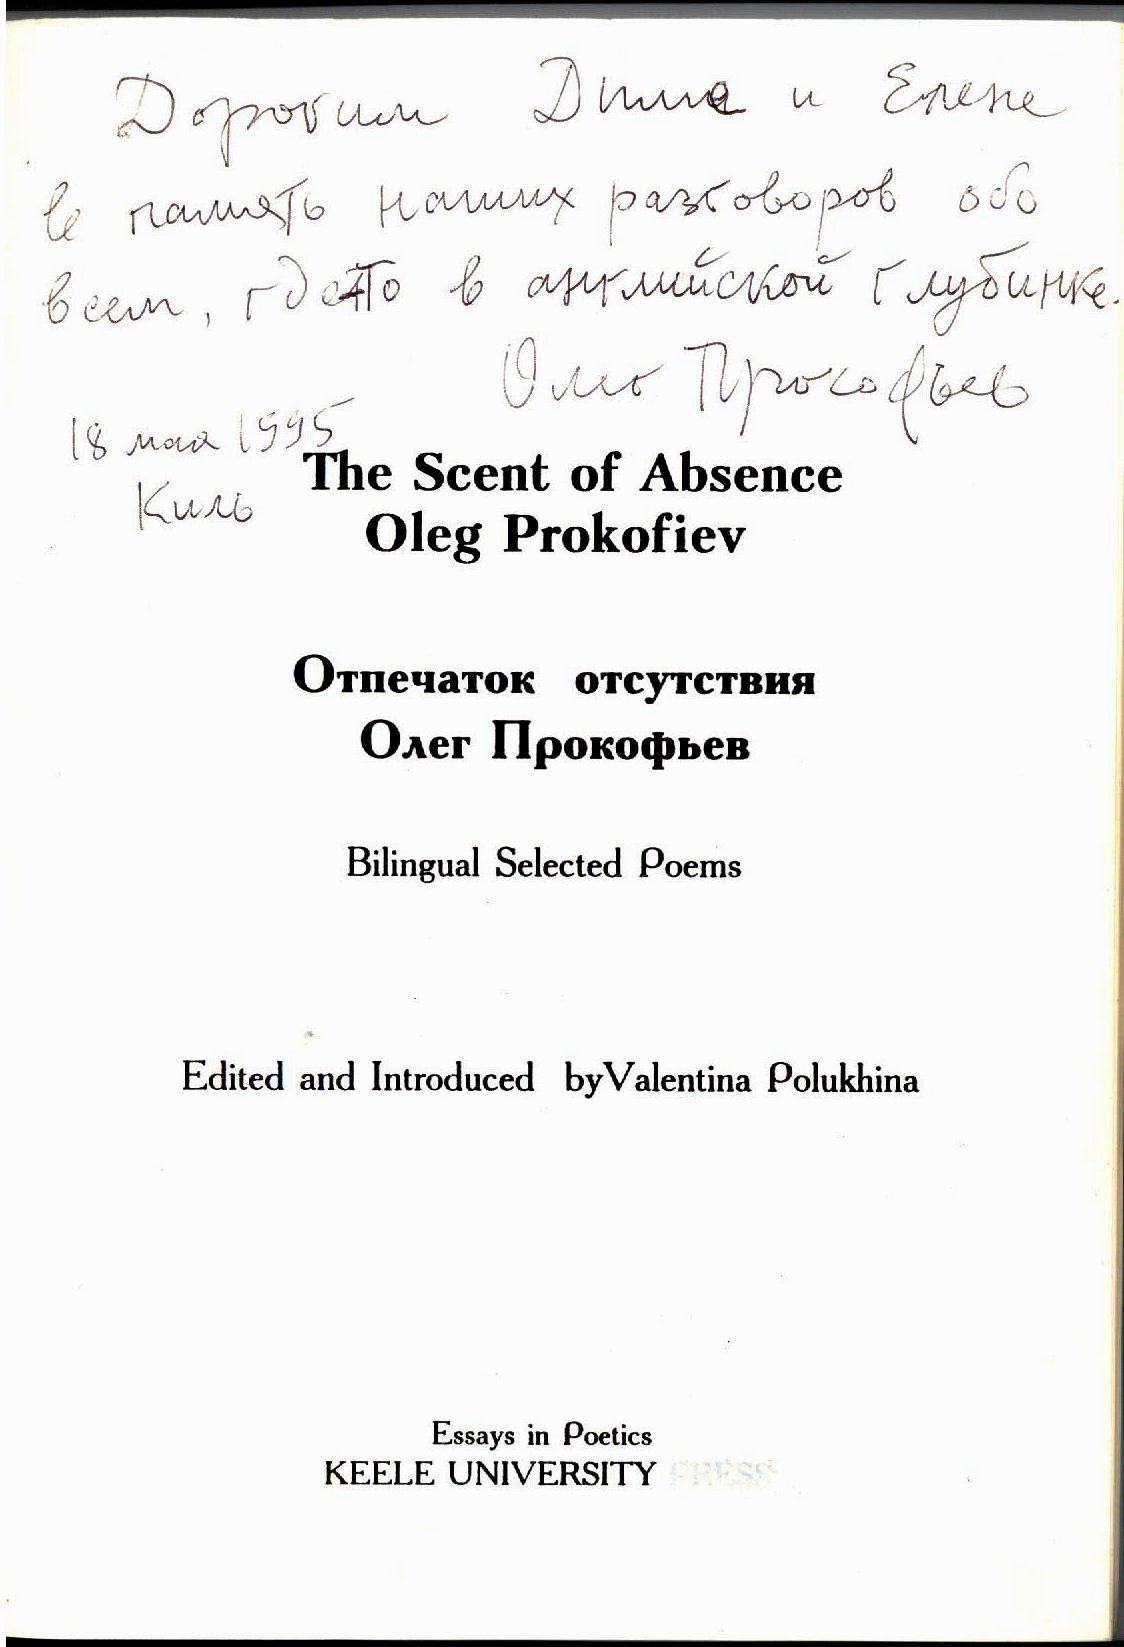 Oleg prokofiev scent of absence.jpg